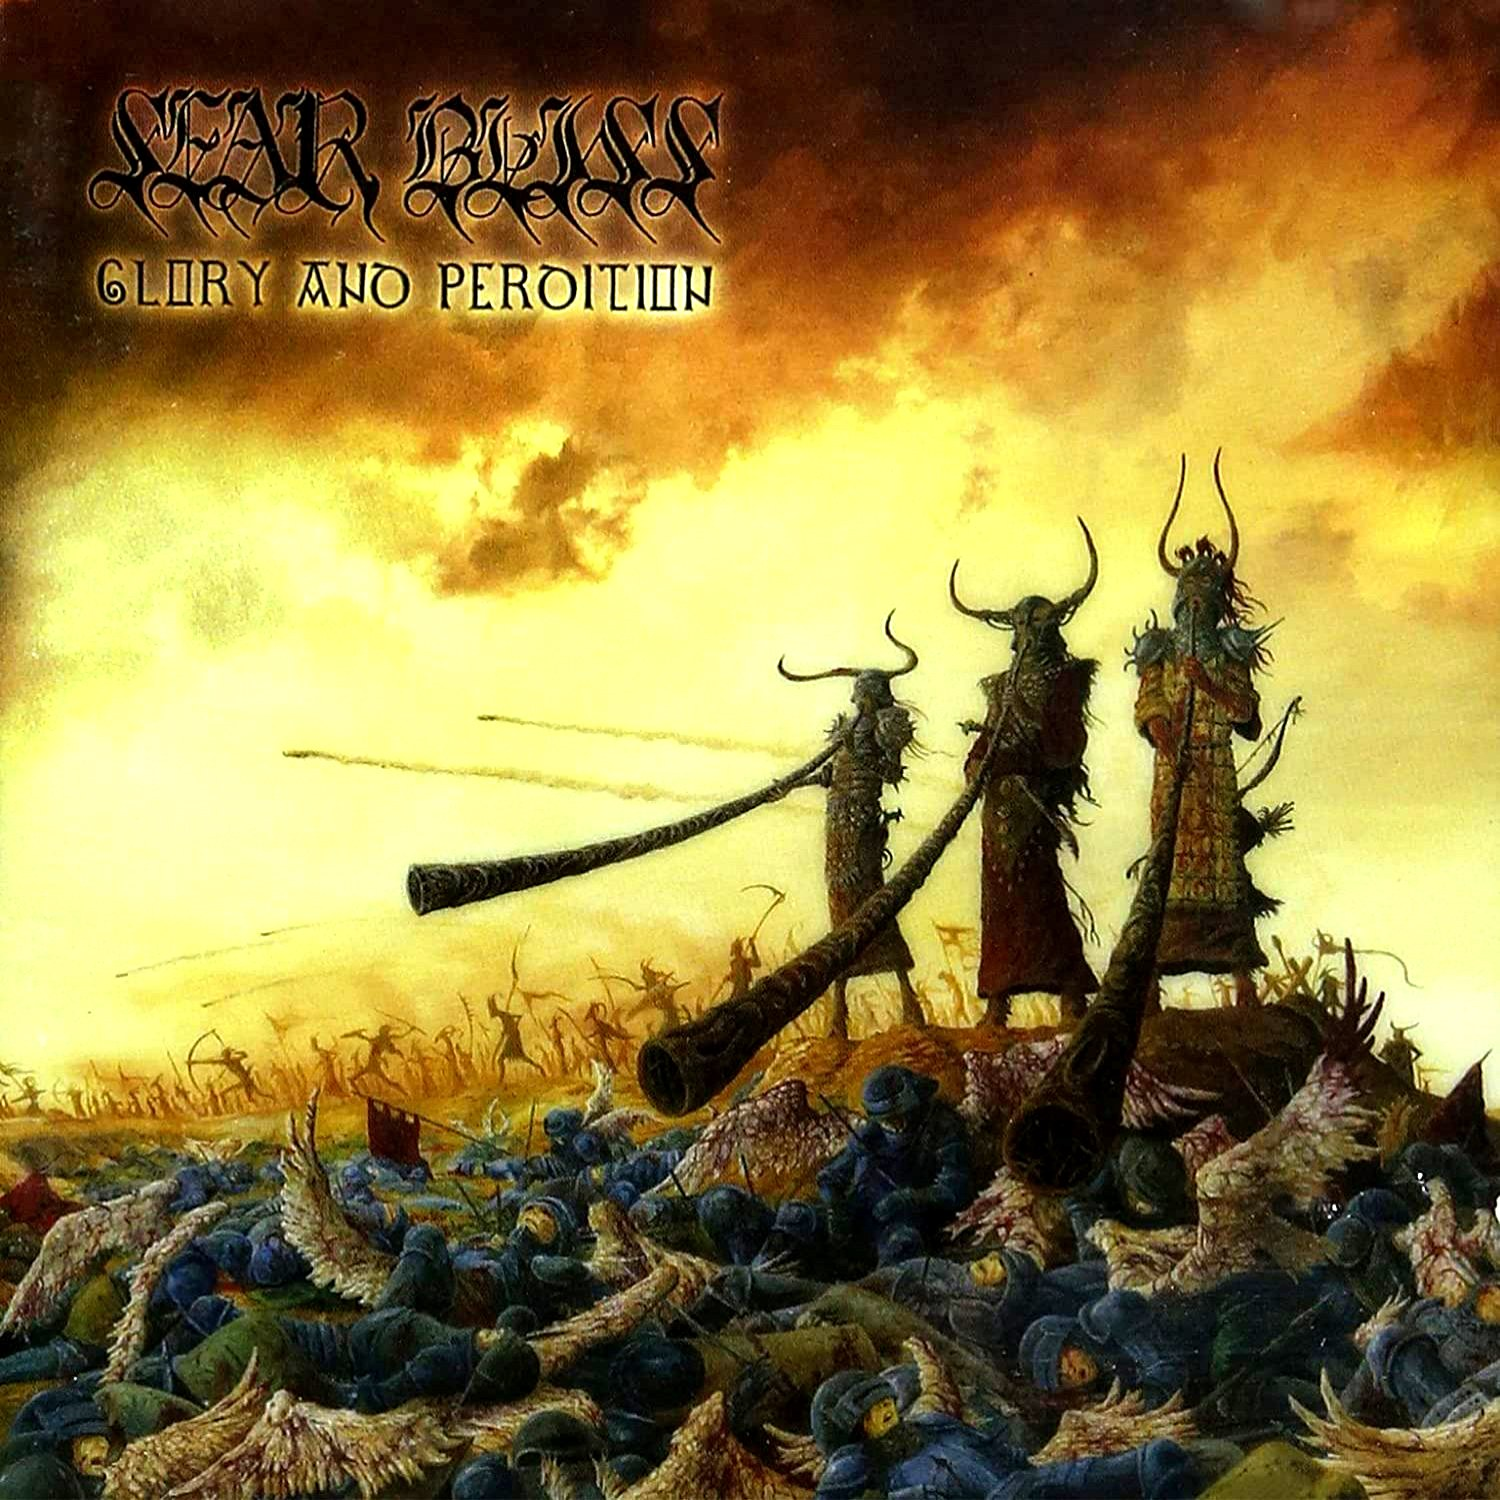 Review for Sear Bliss - Glory and Perdition